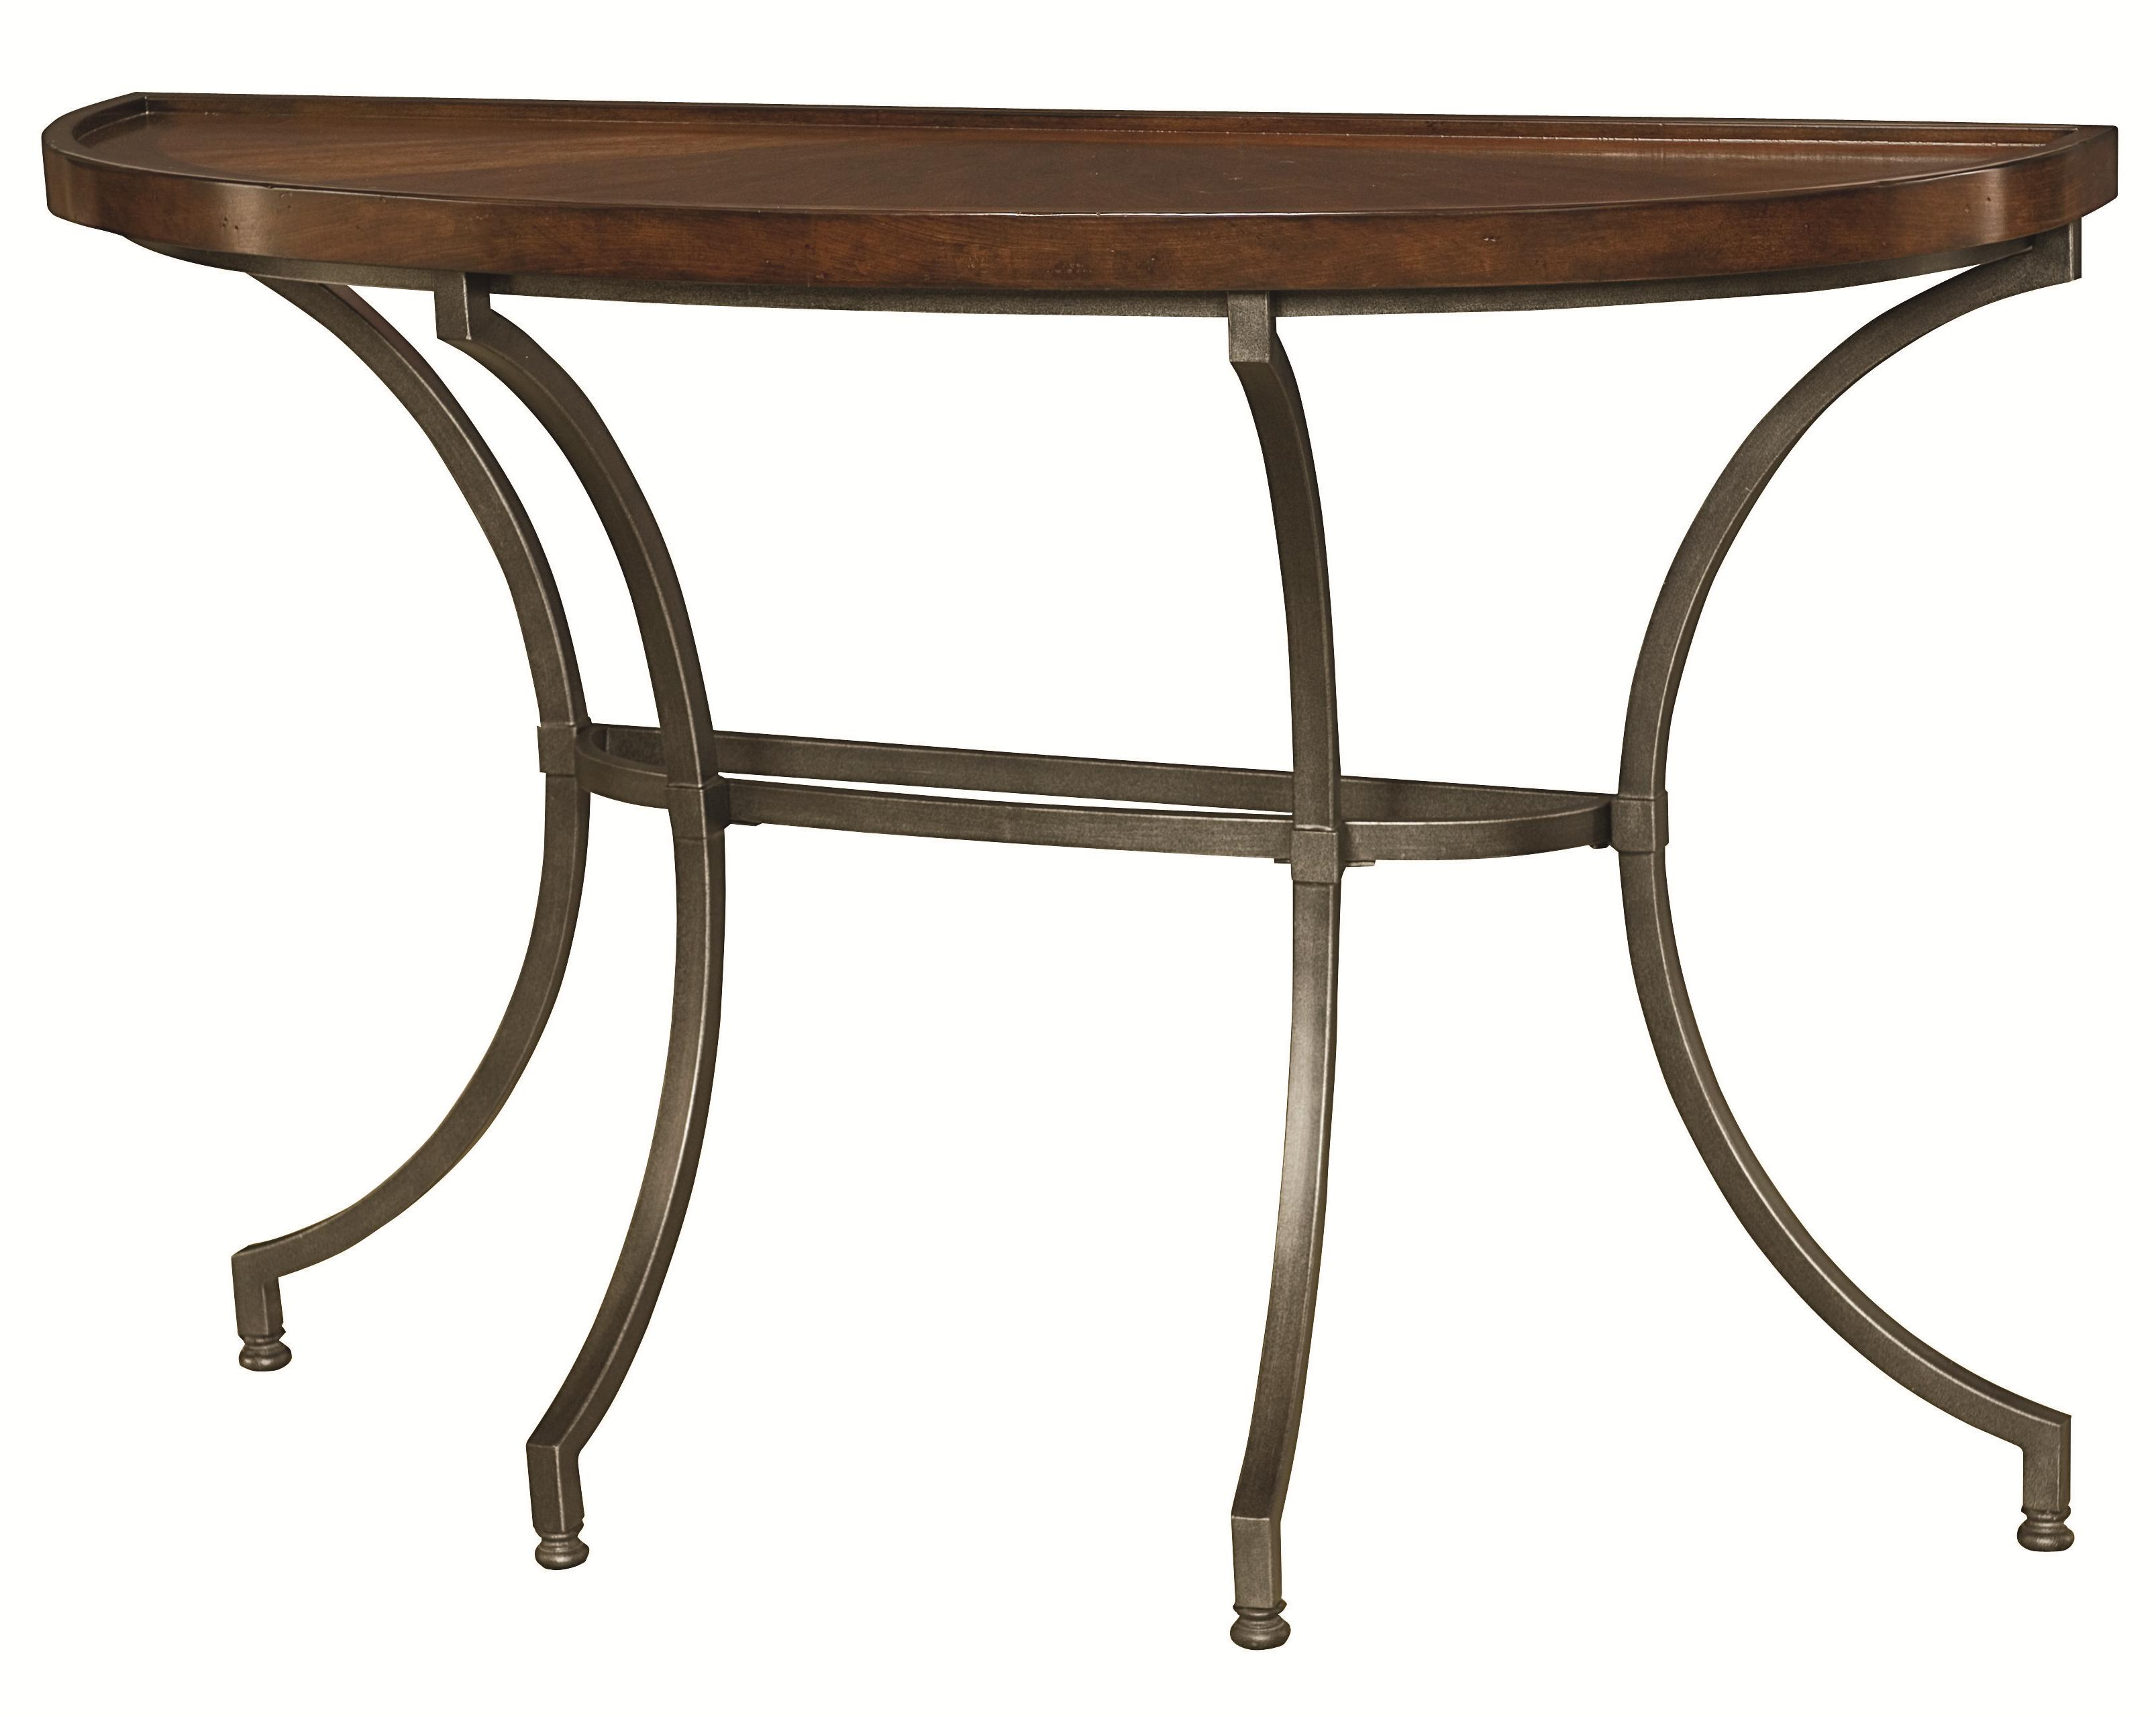 Sofa table with metal legs by hammary wolf and gardiner for Sofa table leg height